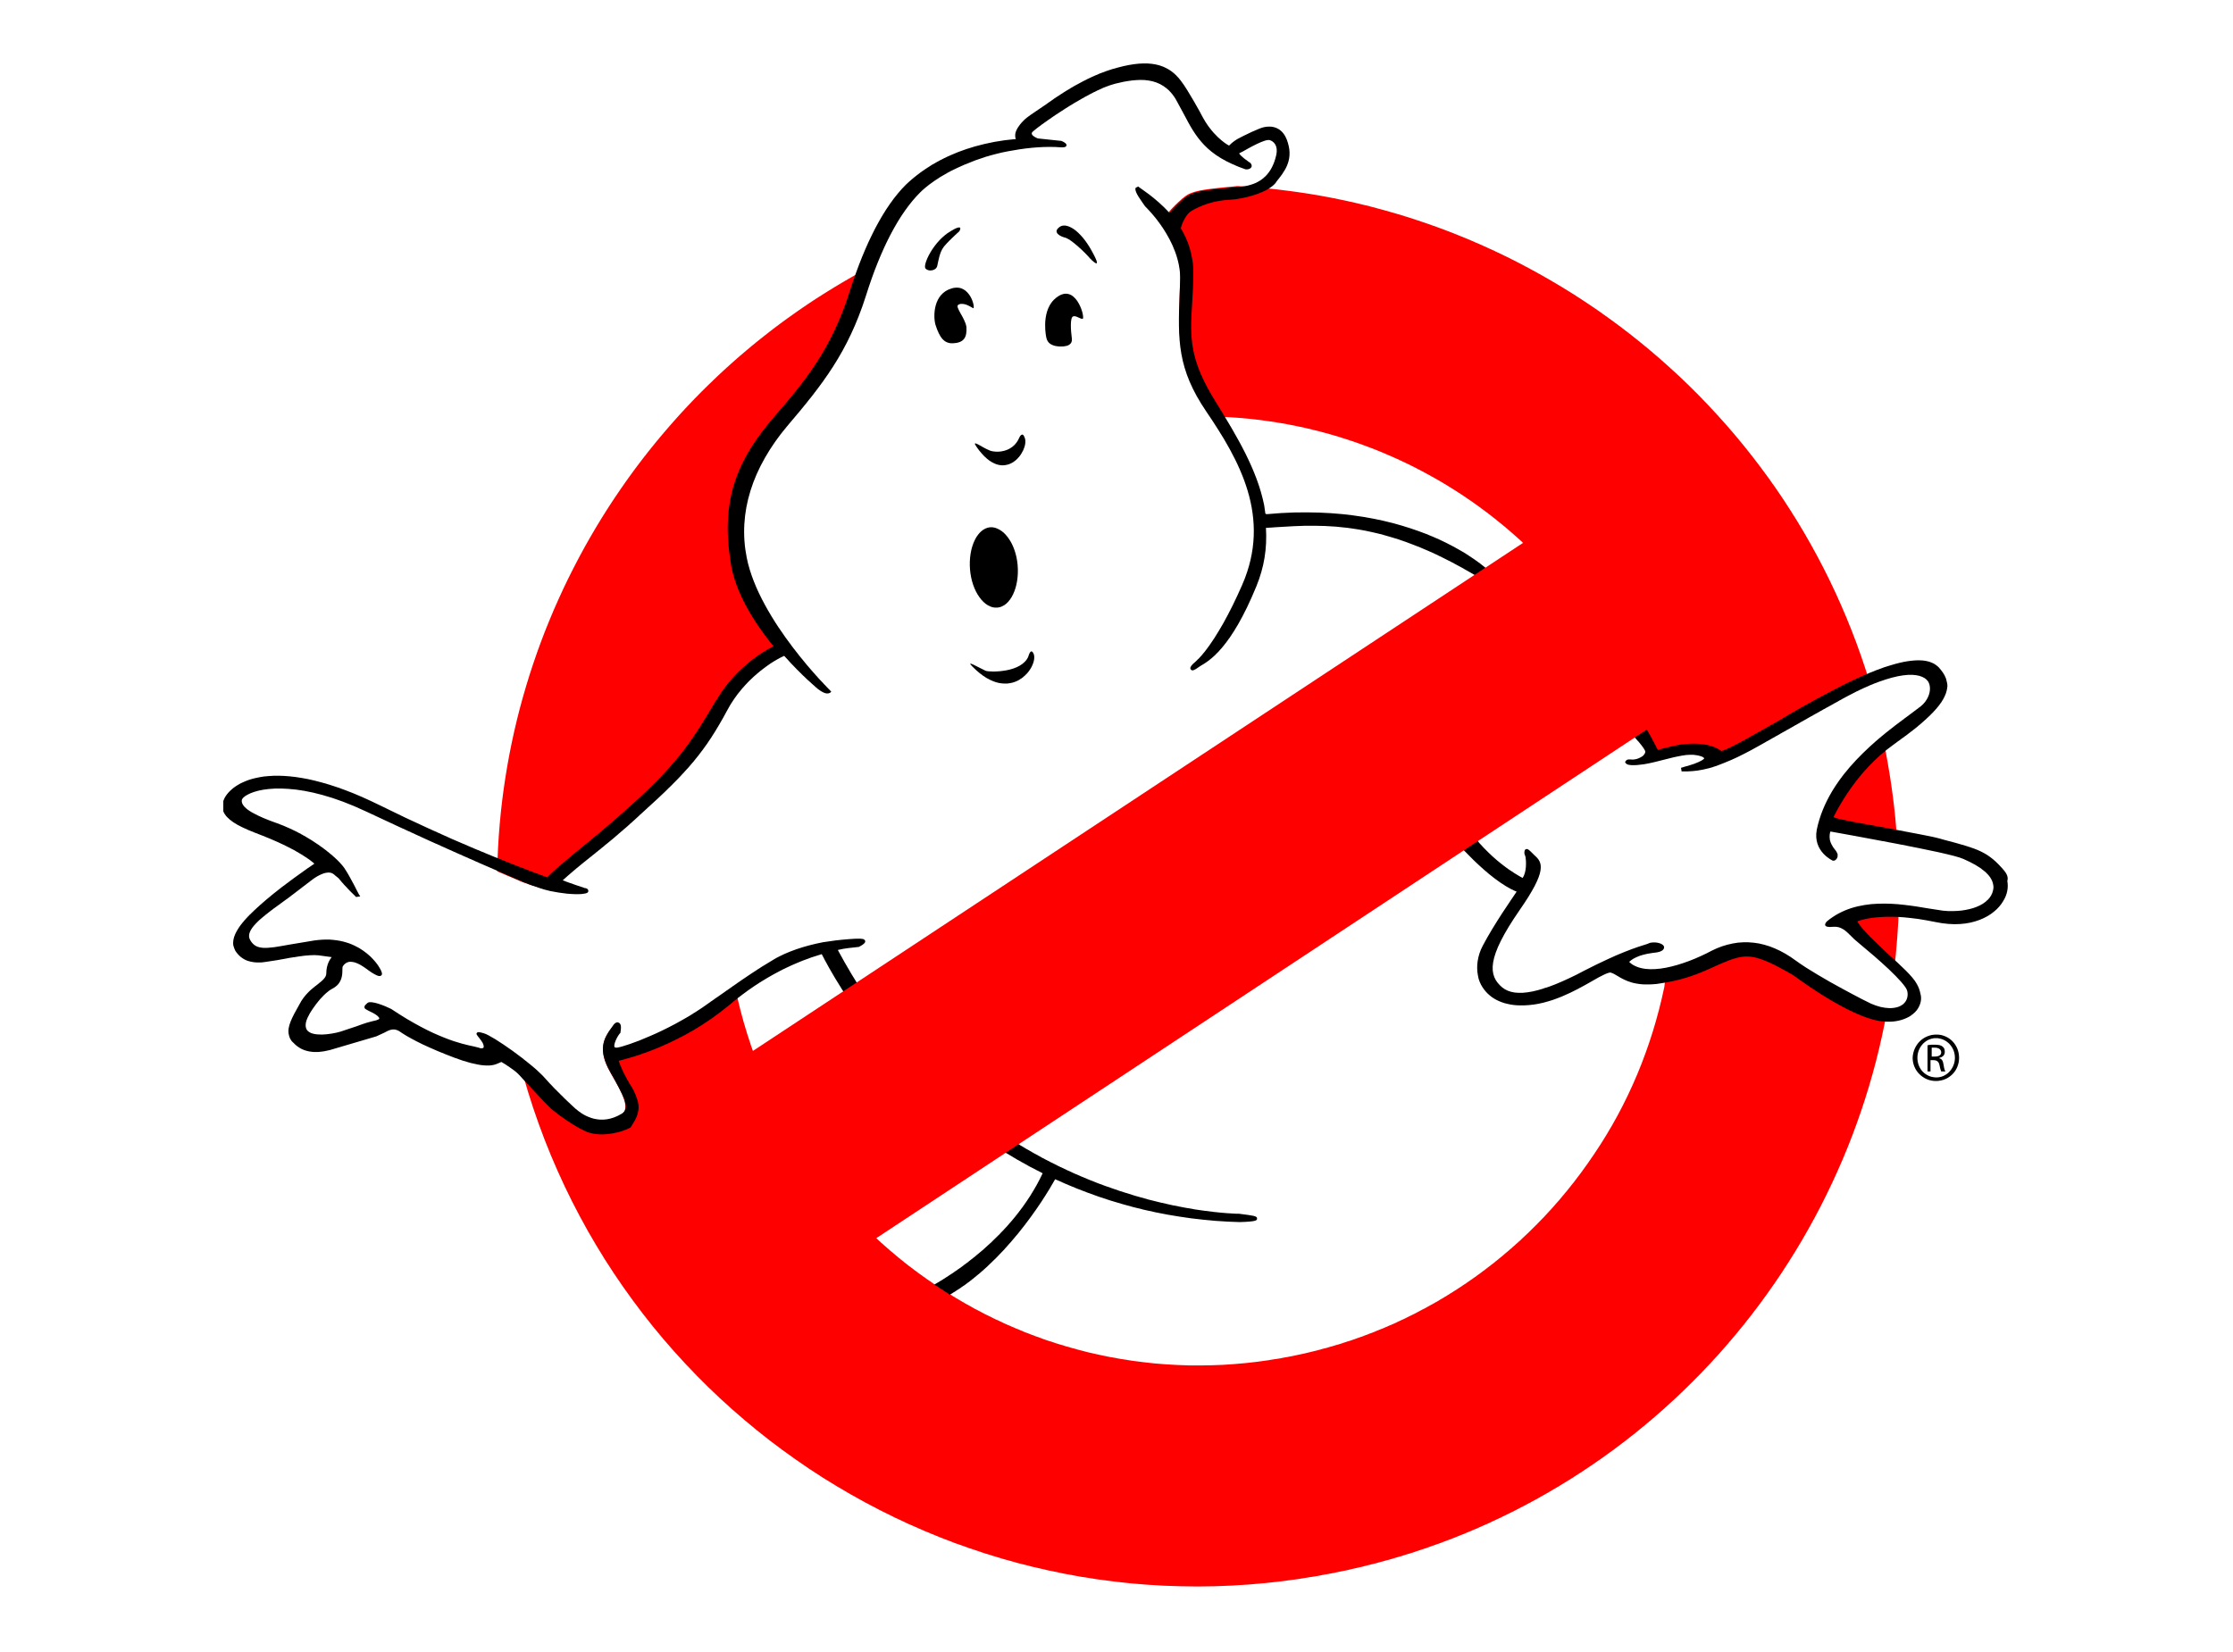 Ghostbusters Logo, Ghostbusters Symbol, Meaning, History and Evolution